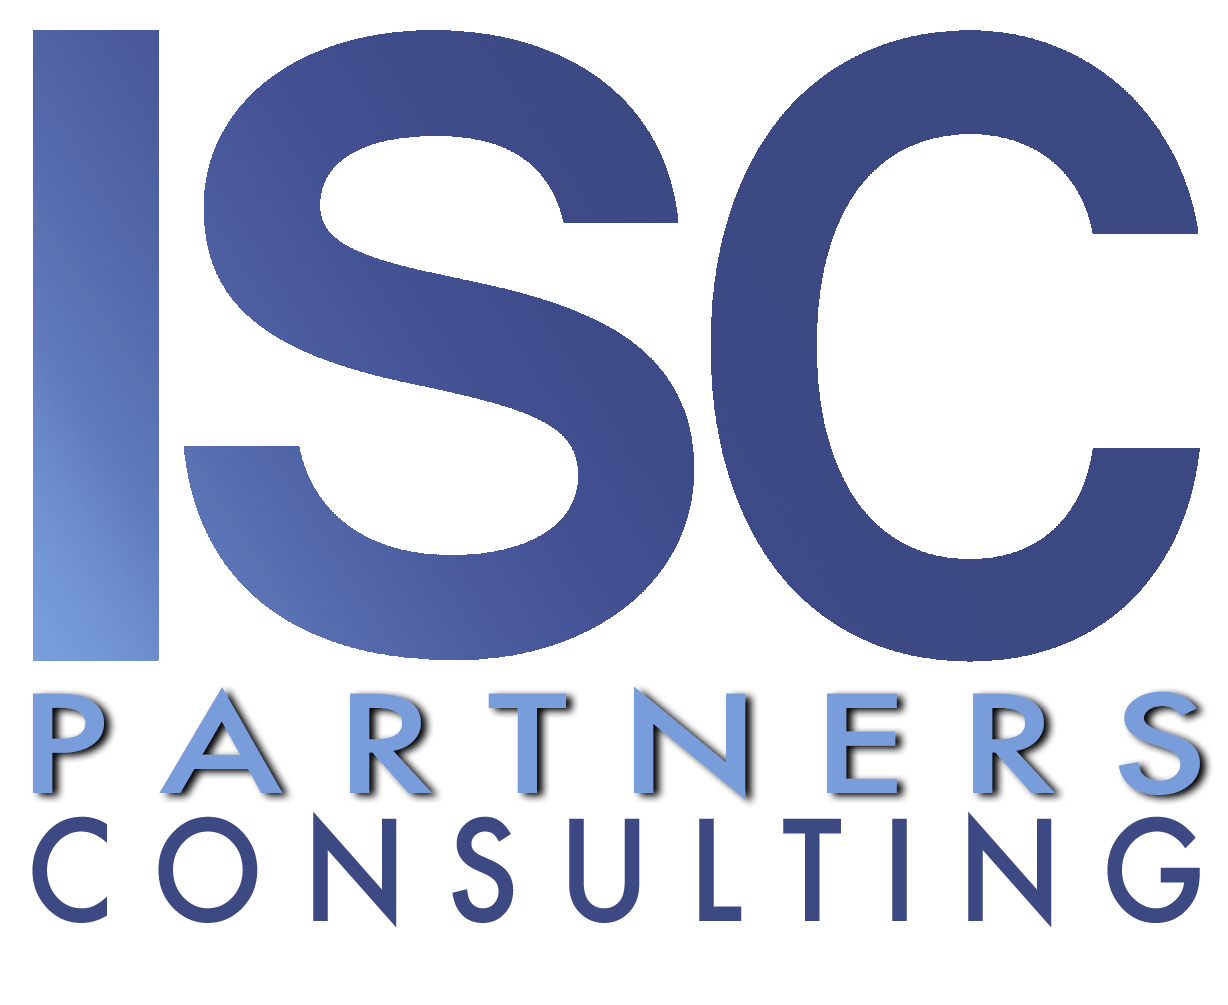 ISC Partners Consulting